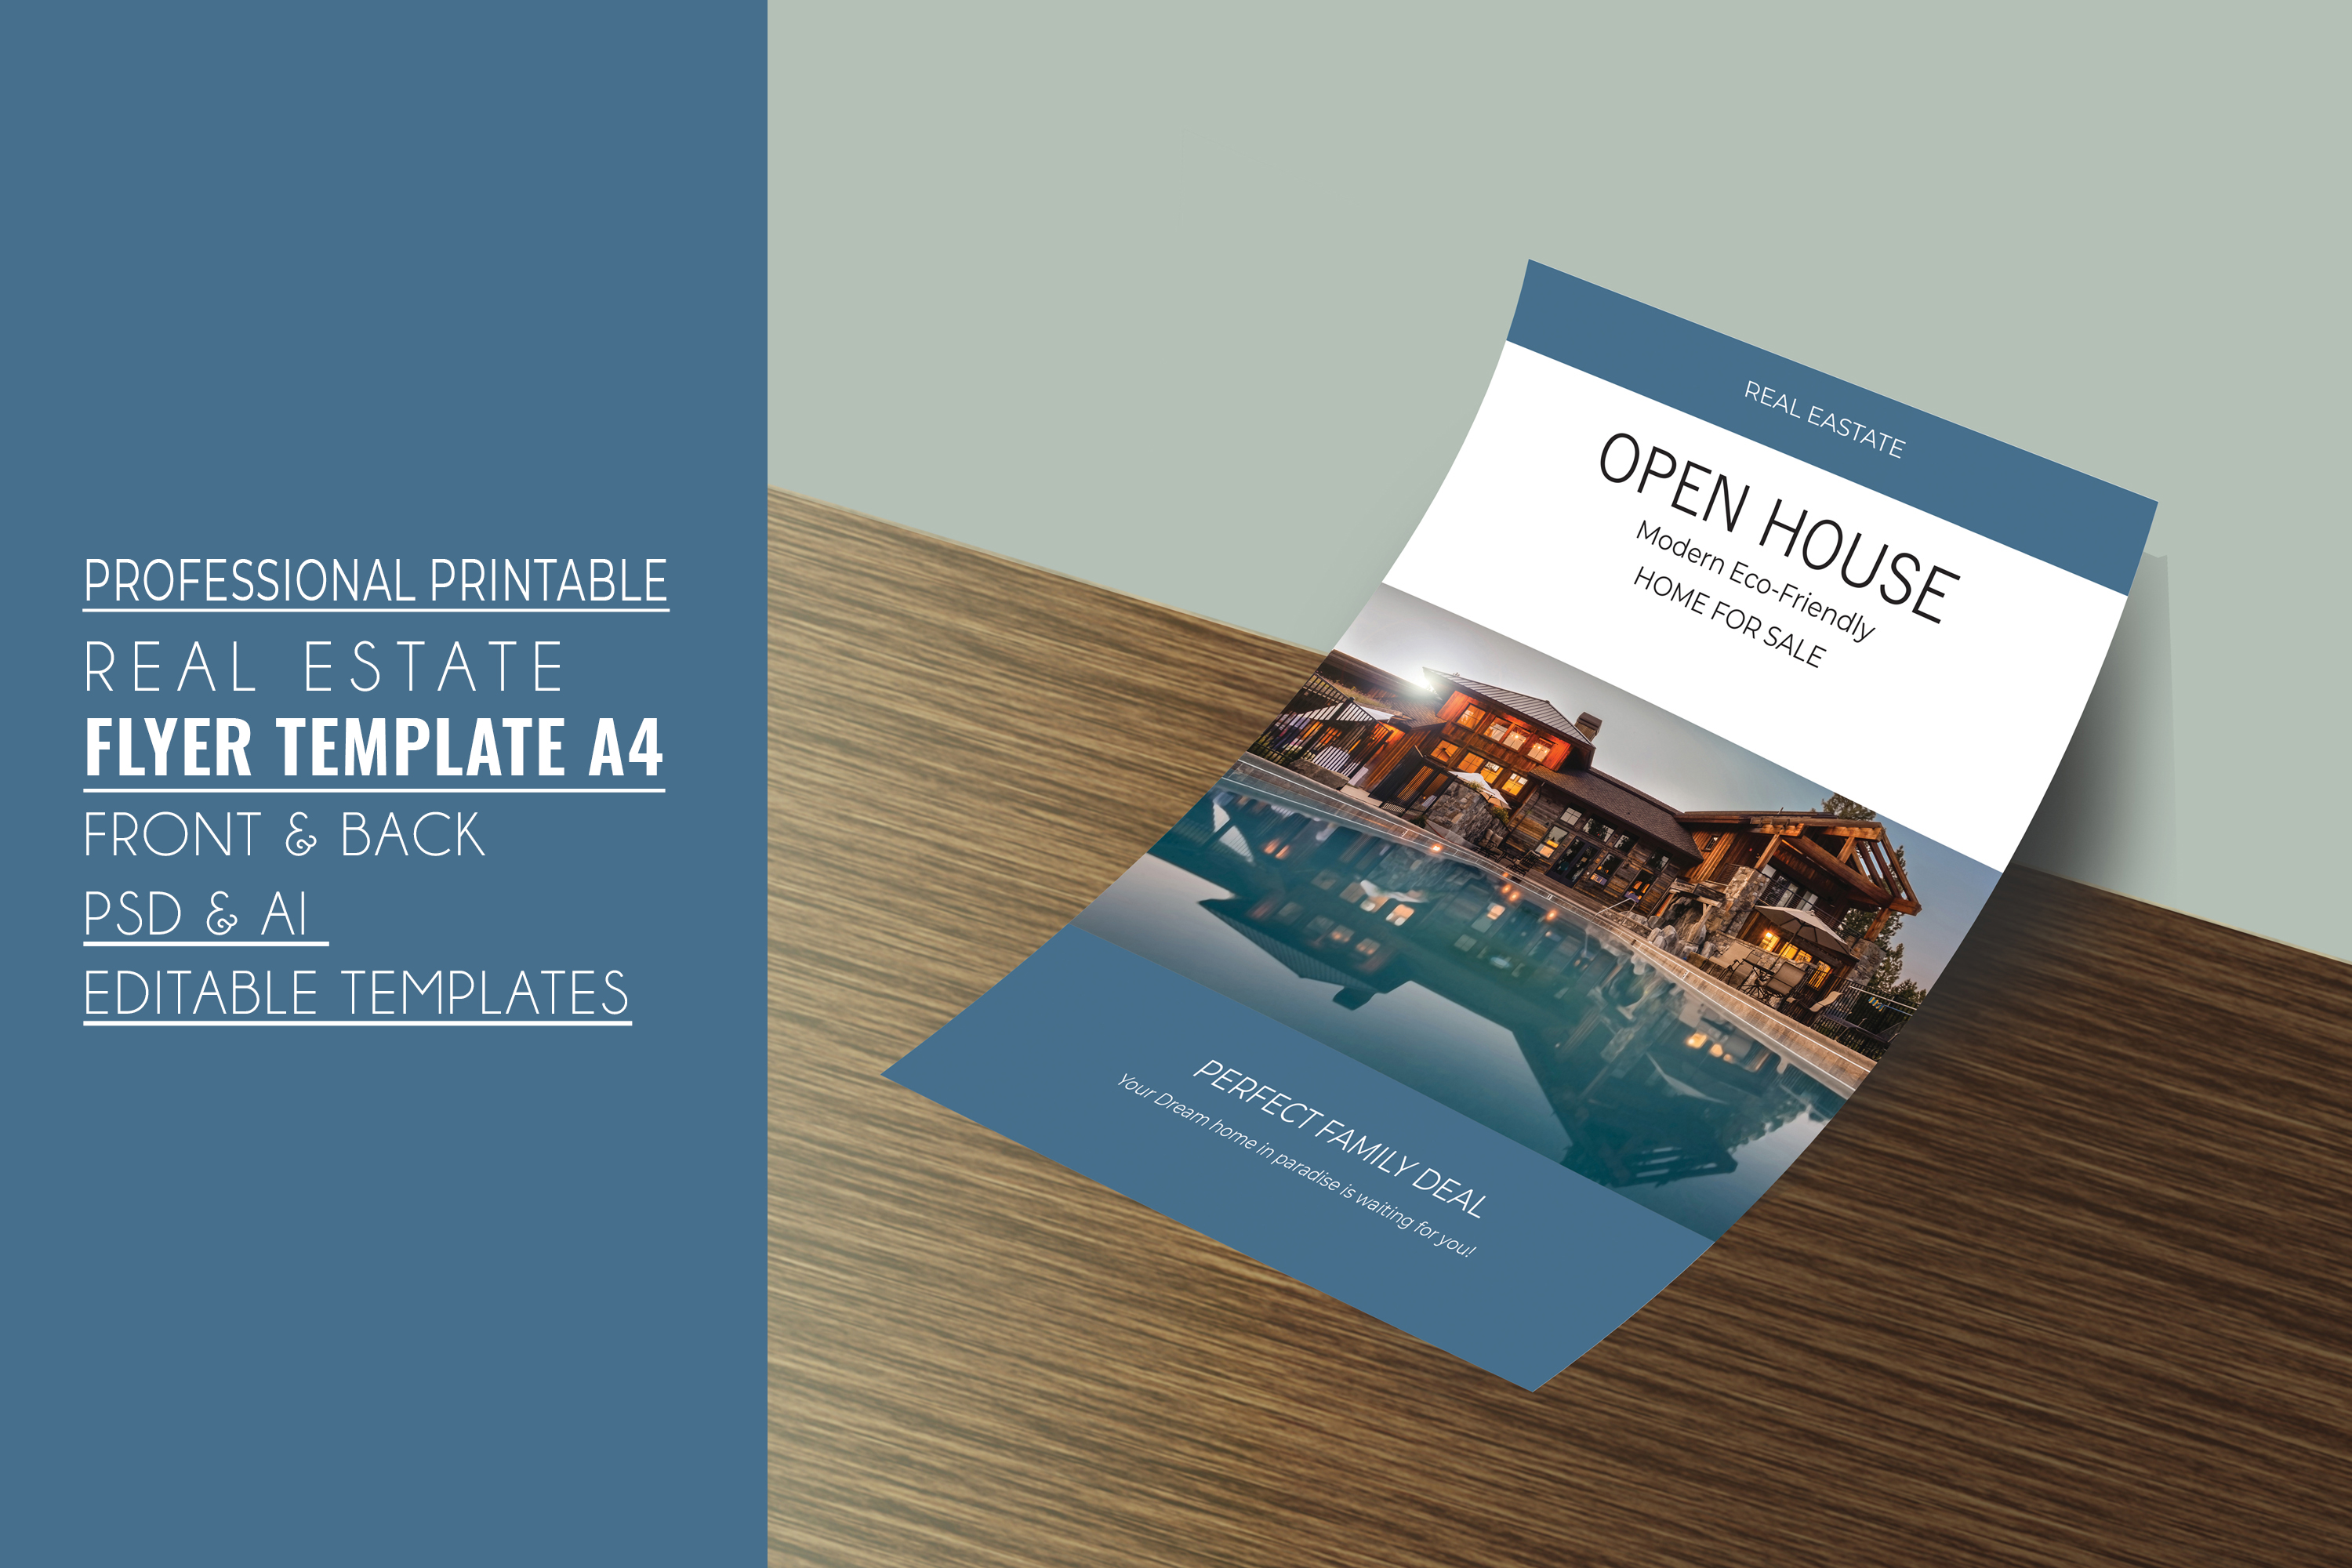 Professional Real Estate Flyer A4 - Printable Templates example image 2